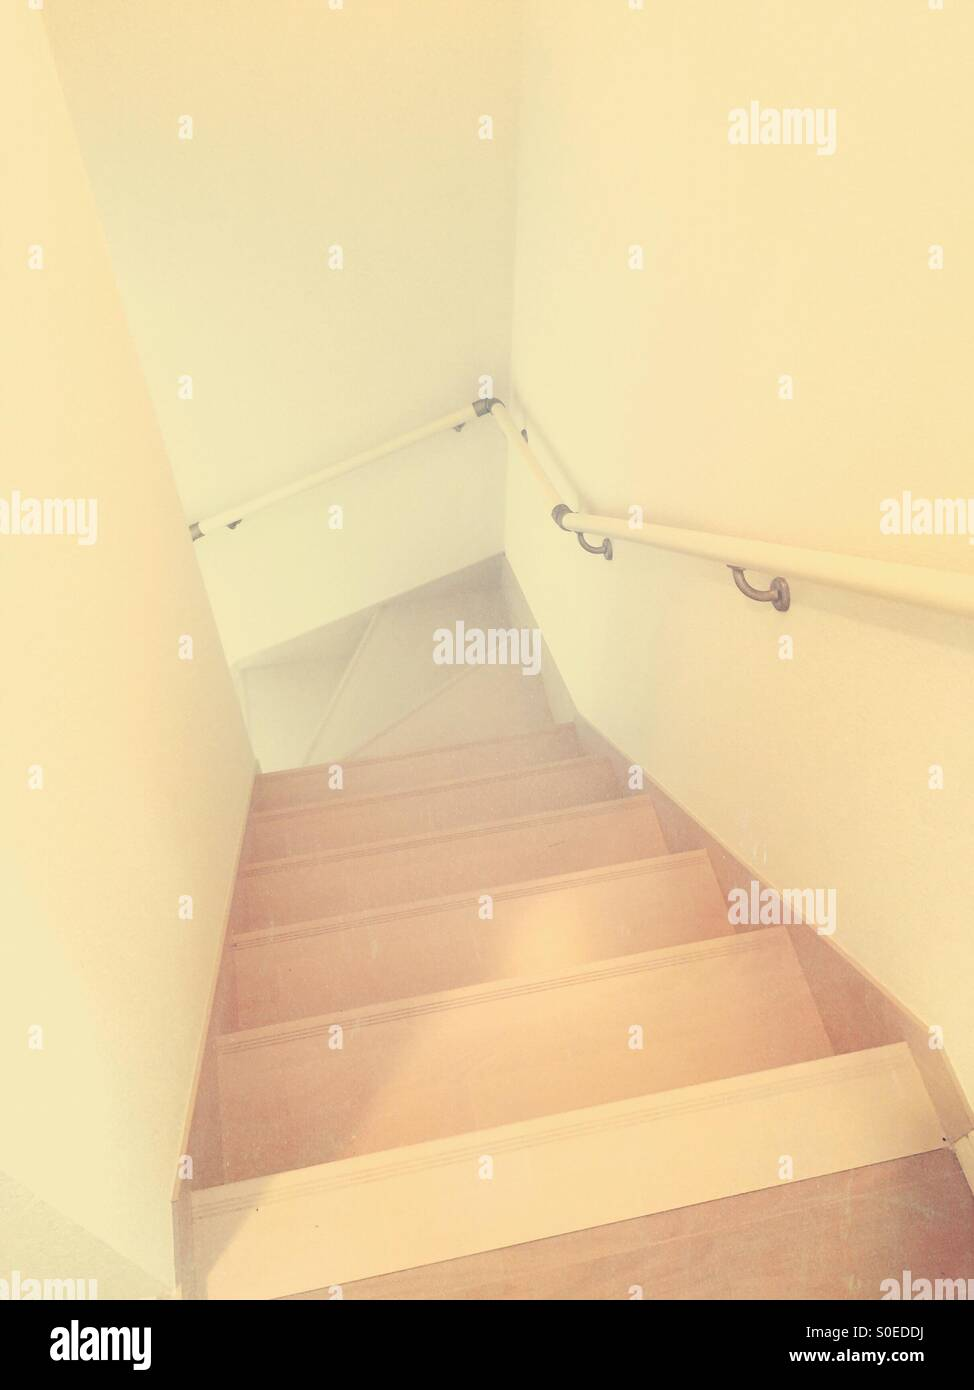 Simple, narrow staircase with light brown wood, white walls and handrail. Vintage paper texture overlay.Stock Photo